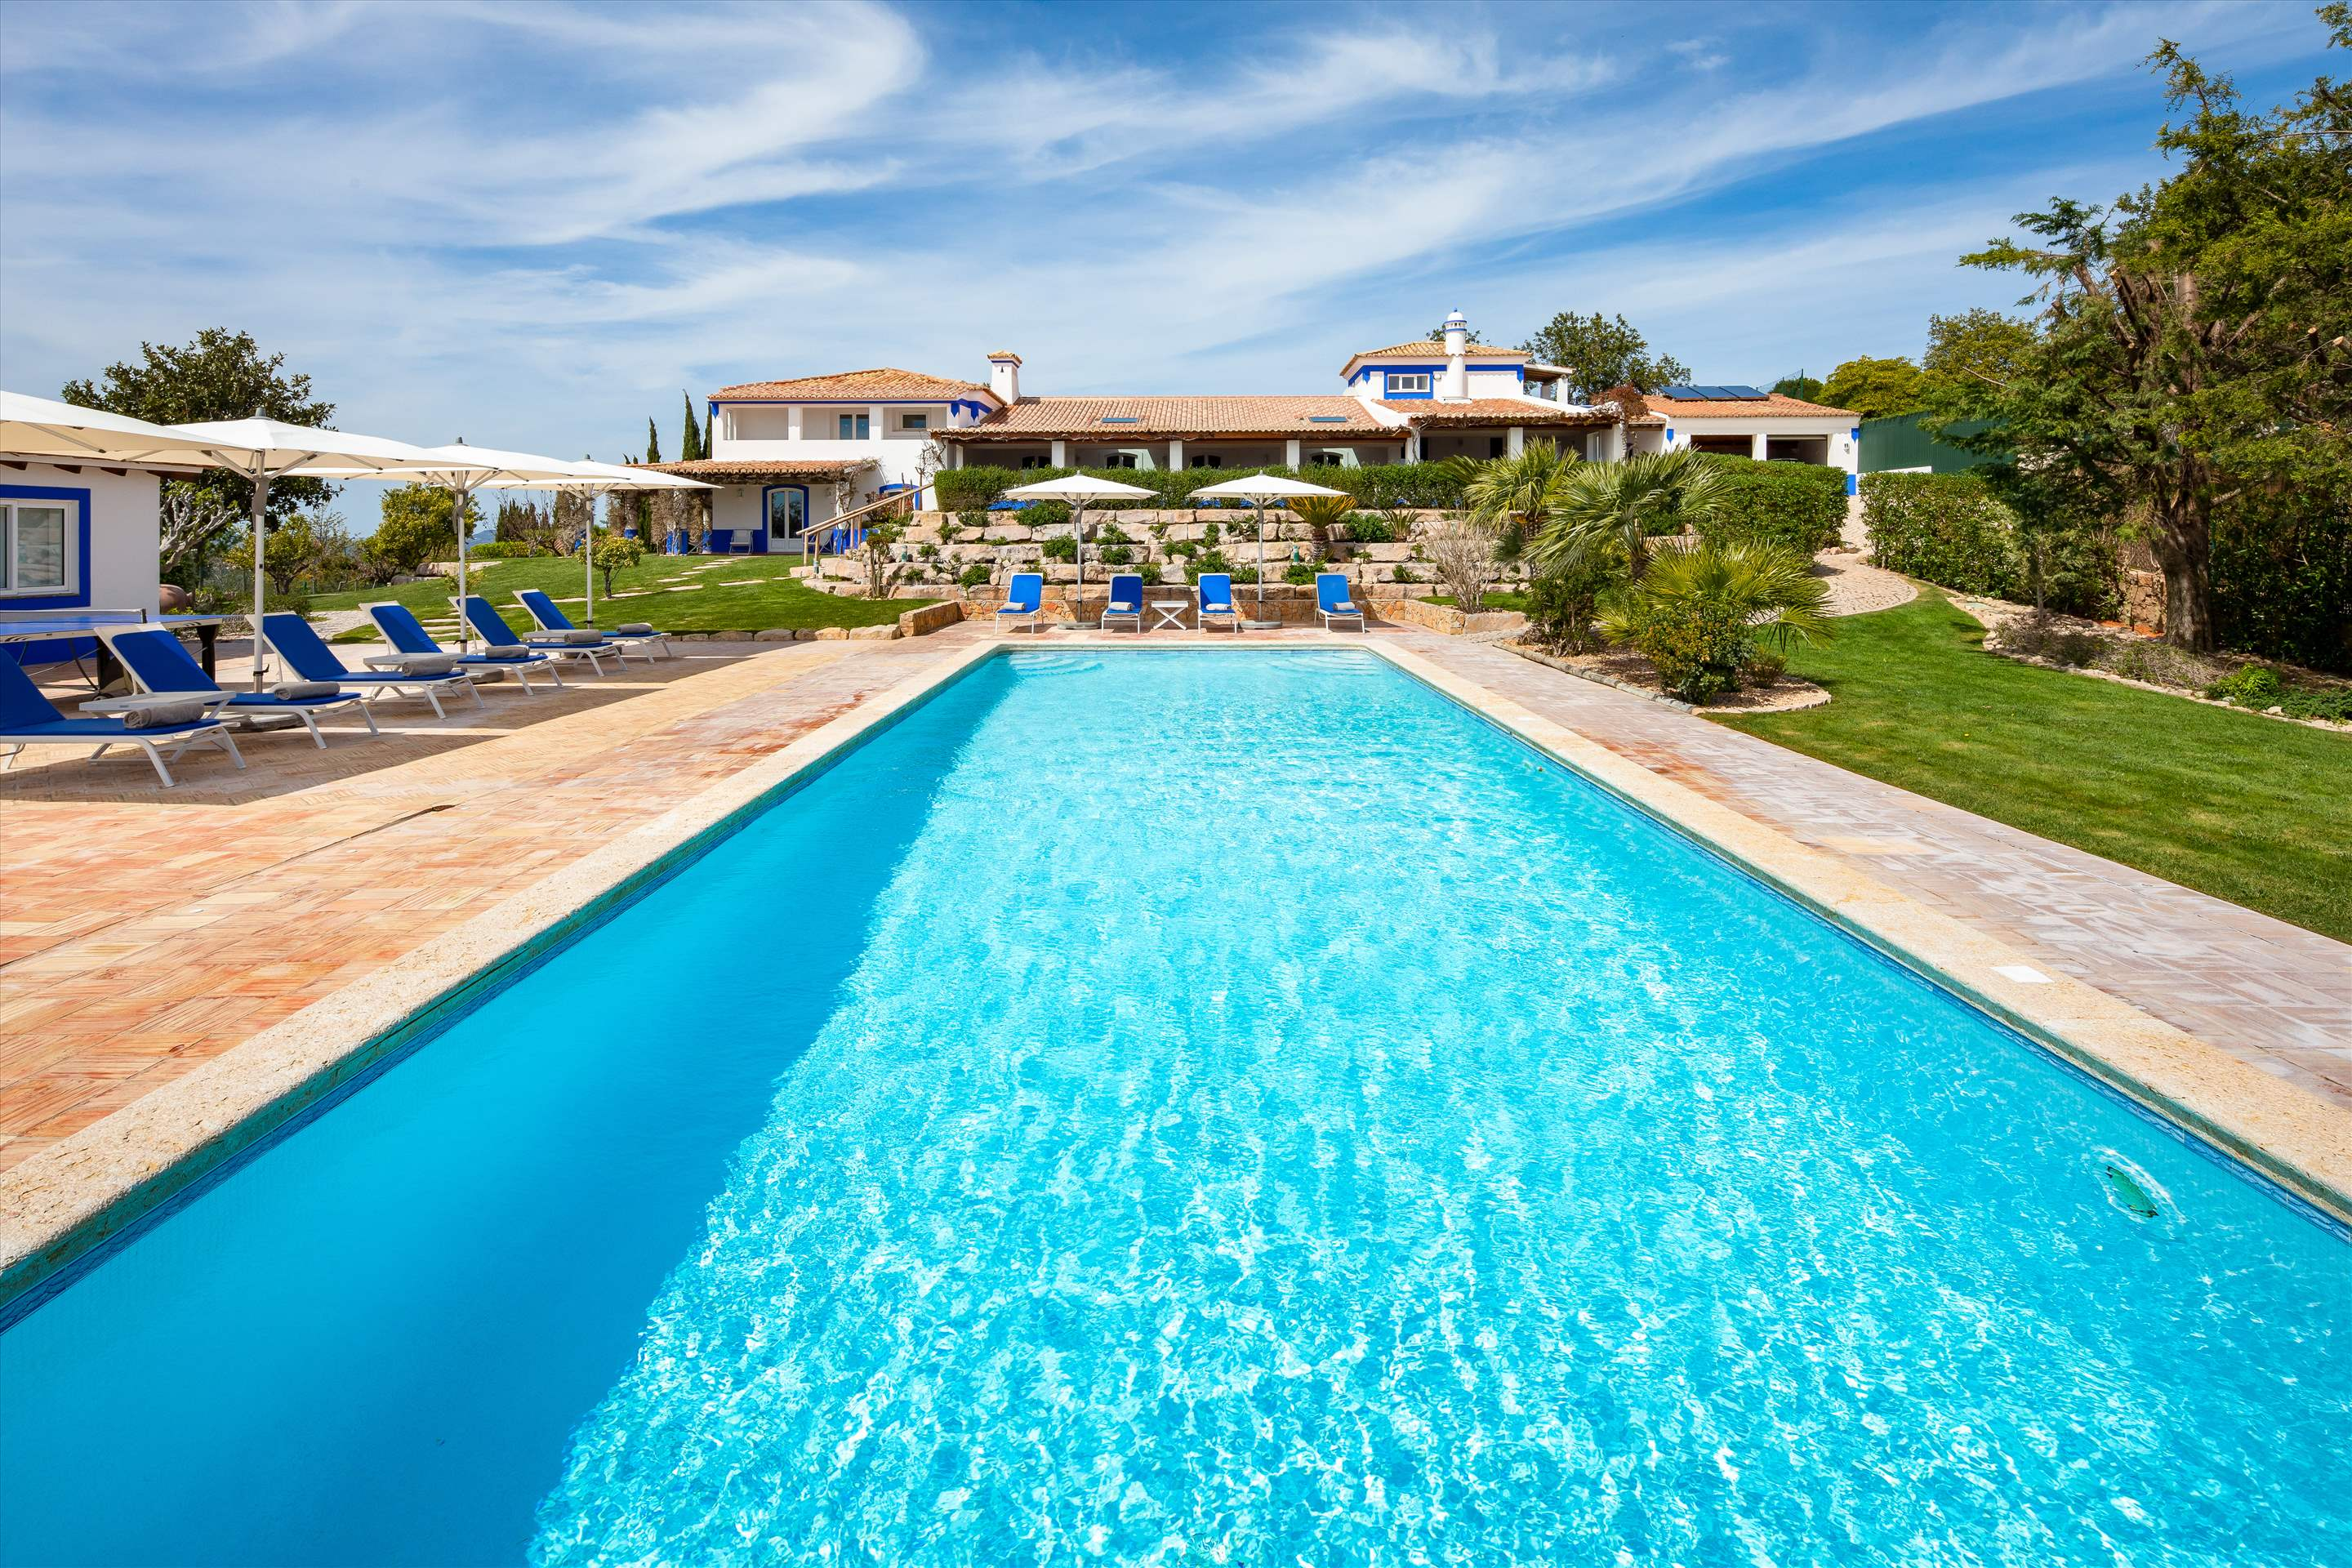 Casa da Montanha, 13-14 persons, 8 bedroom villa in Vilamoura Area, Algarve